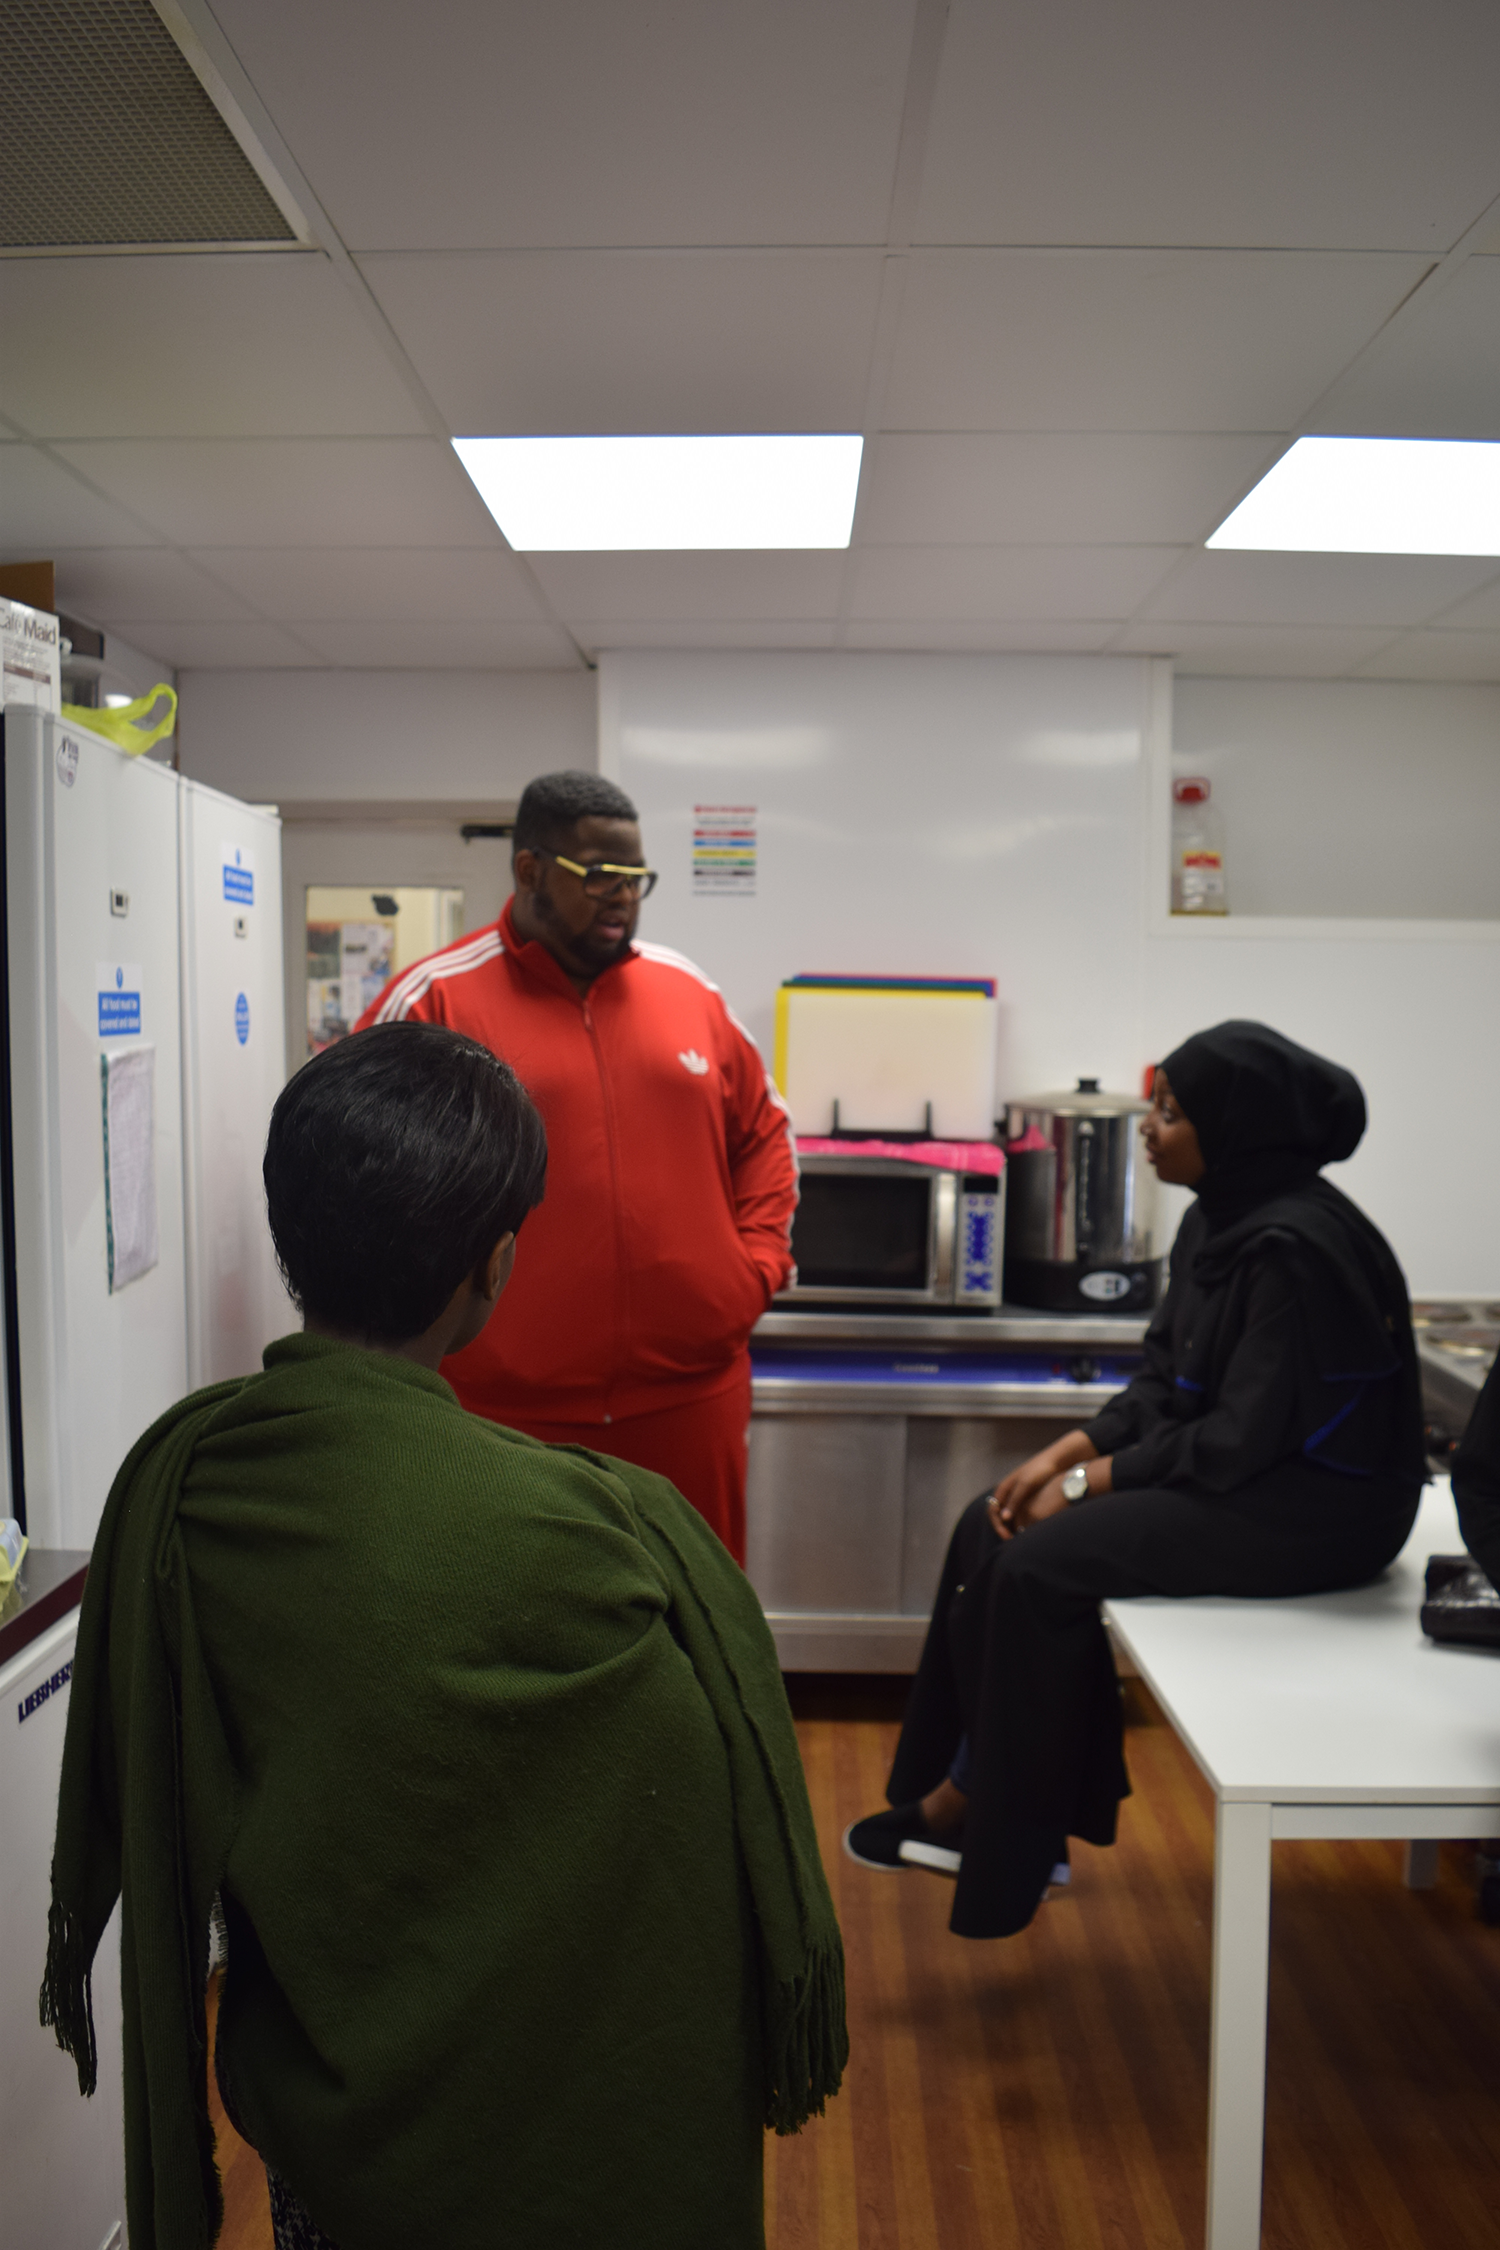 Donating food and cooking for the homeless at Brixton Soup Kitchen